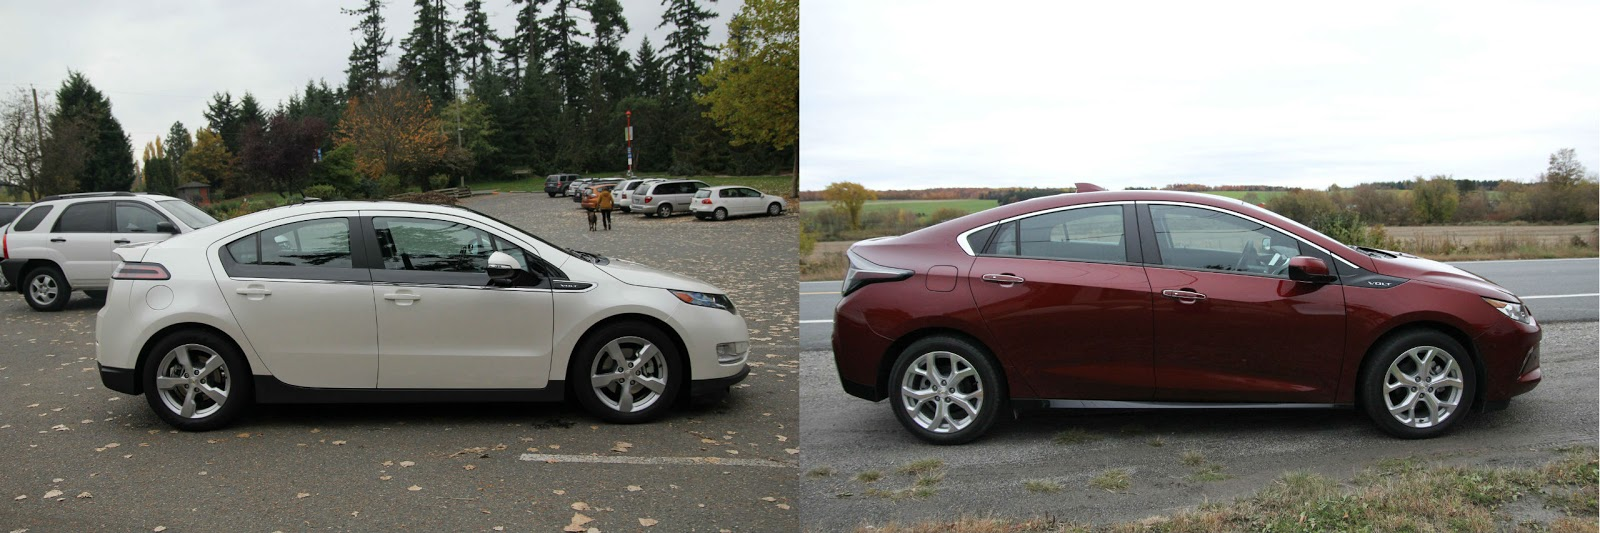 2011 Vs 2016 Chevy Volt A Photo Comparison Dustin B My Ev Gas Side View Rear Hatch Of Vehicle Is Very Different Tank Cap Has Moved Significantly Door Completely